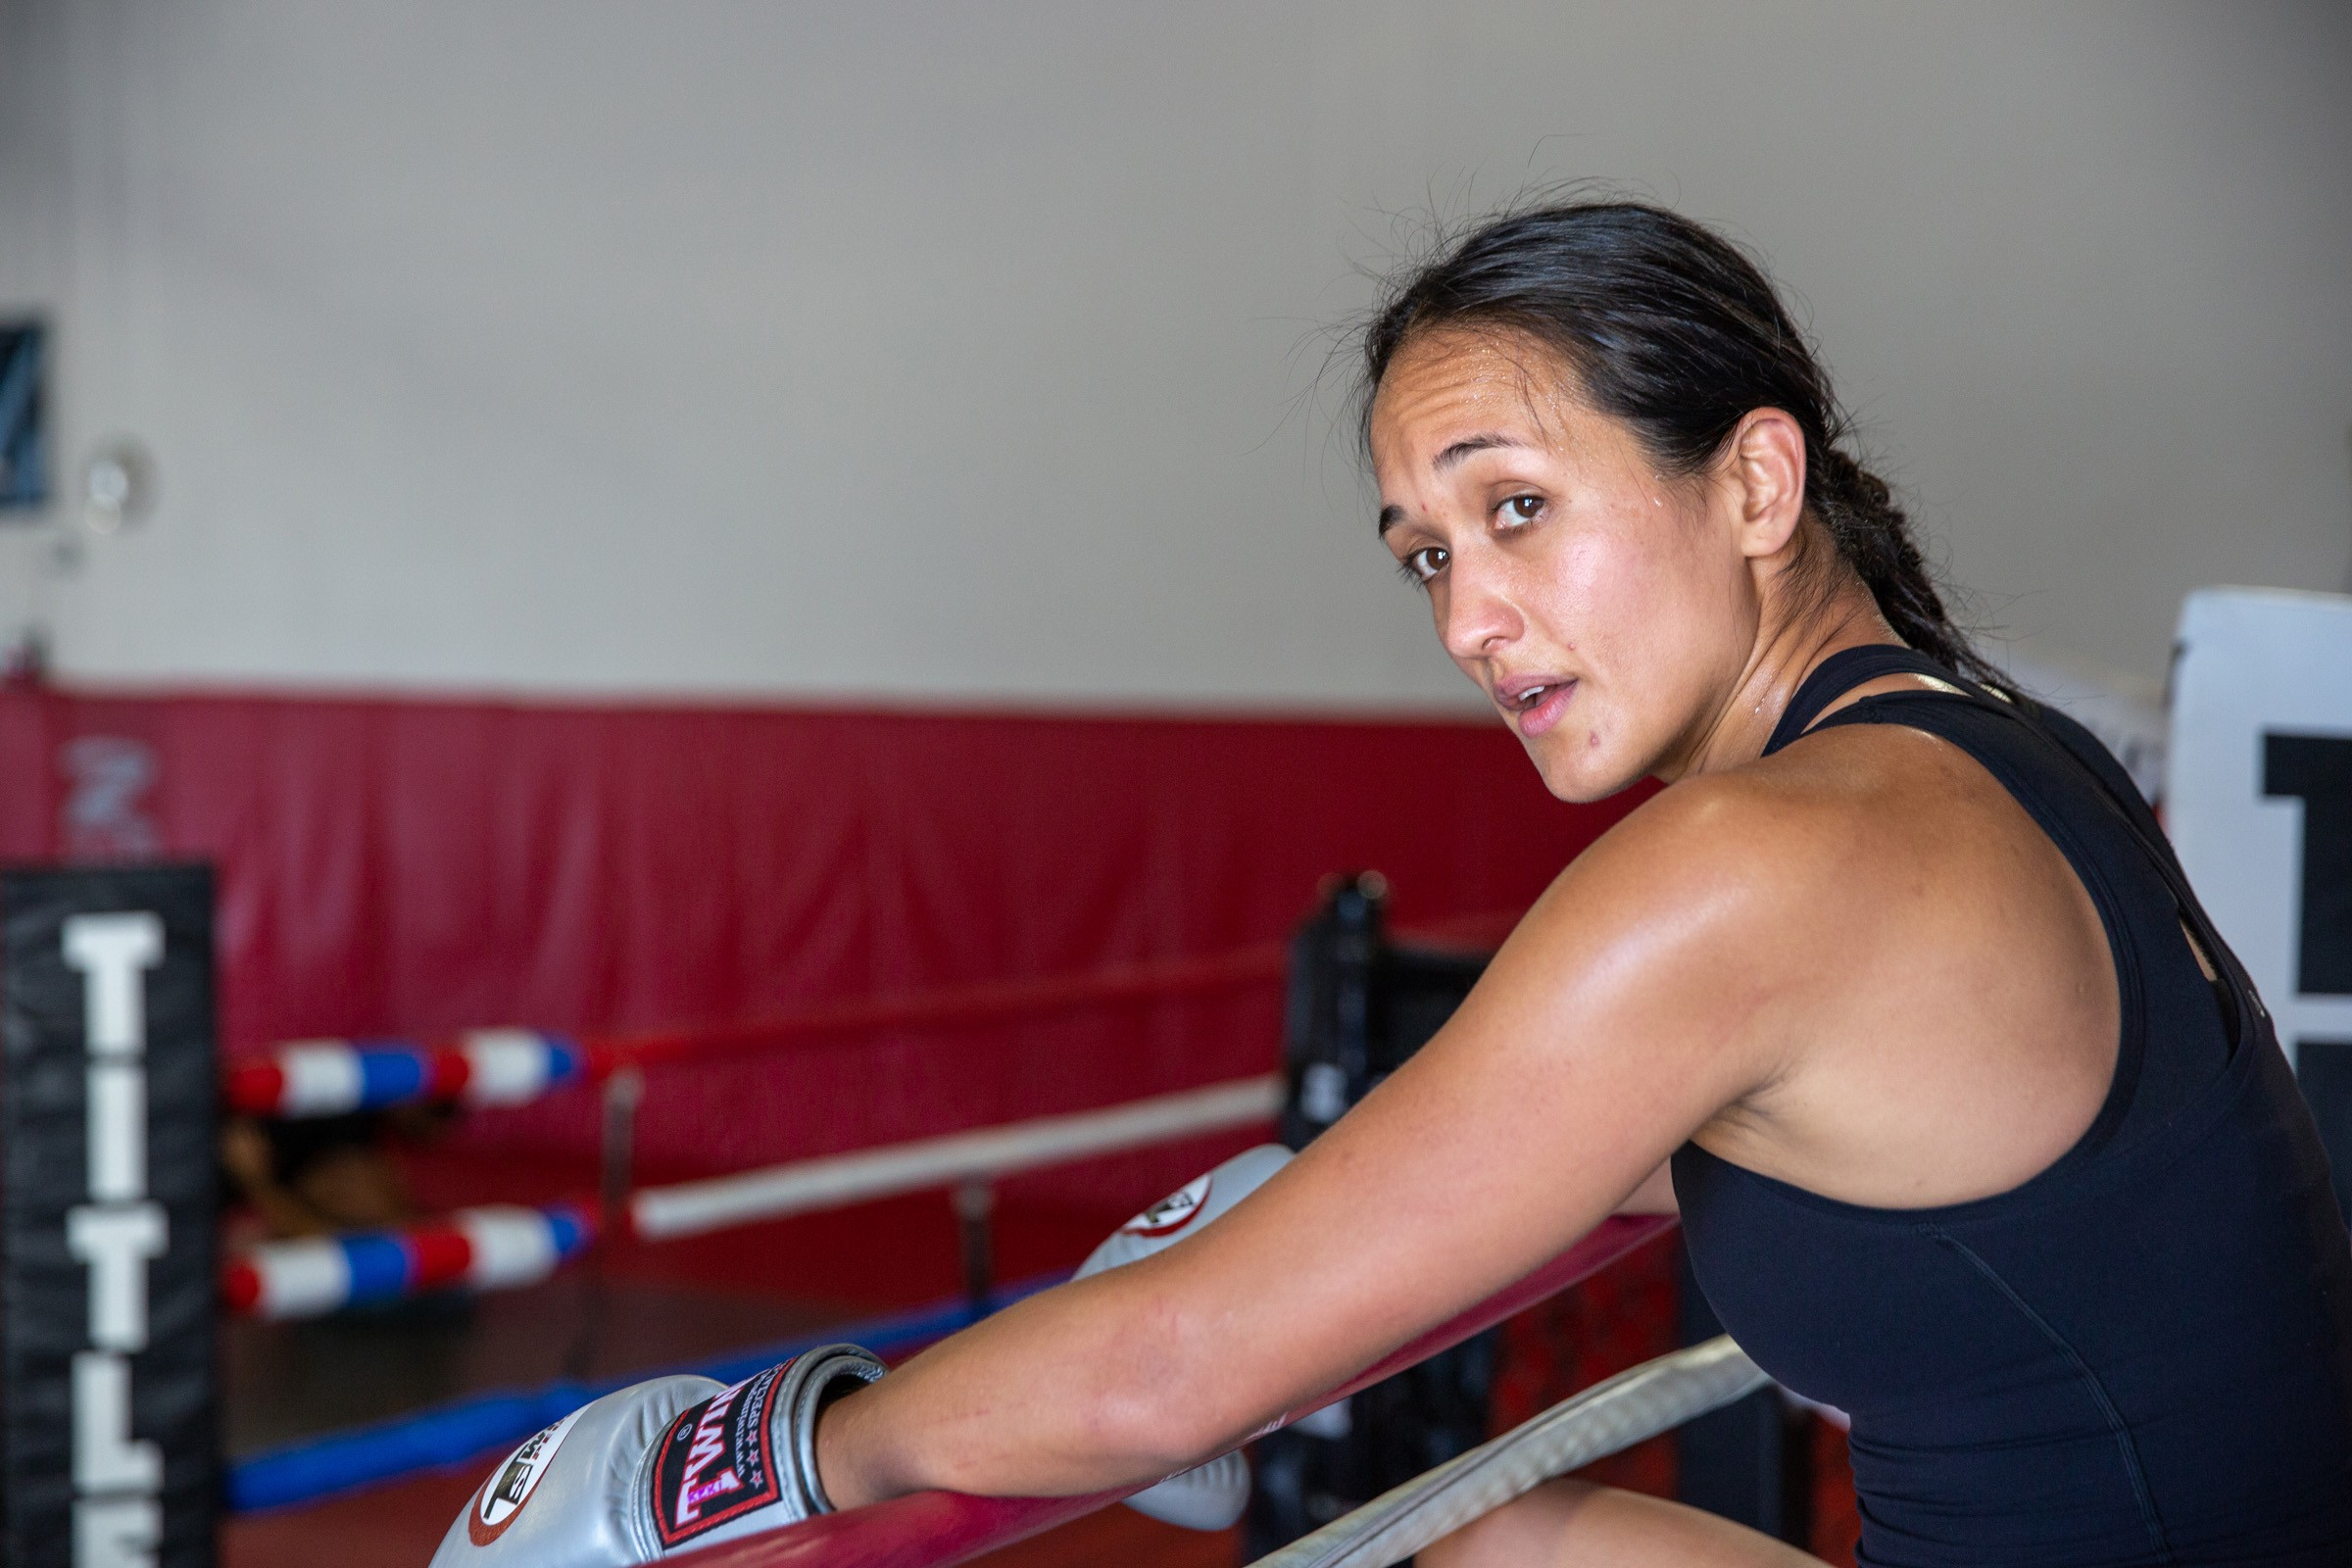 In the ring with local MMA fighter (and mother) Keri Melendez